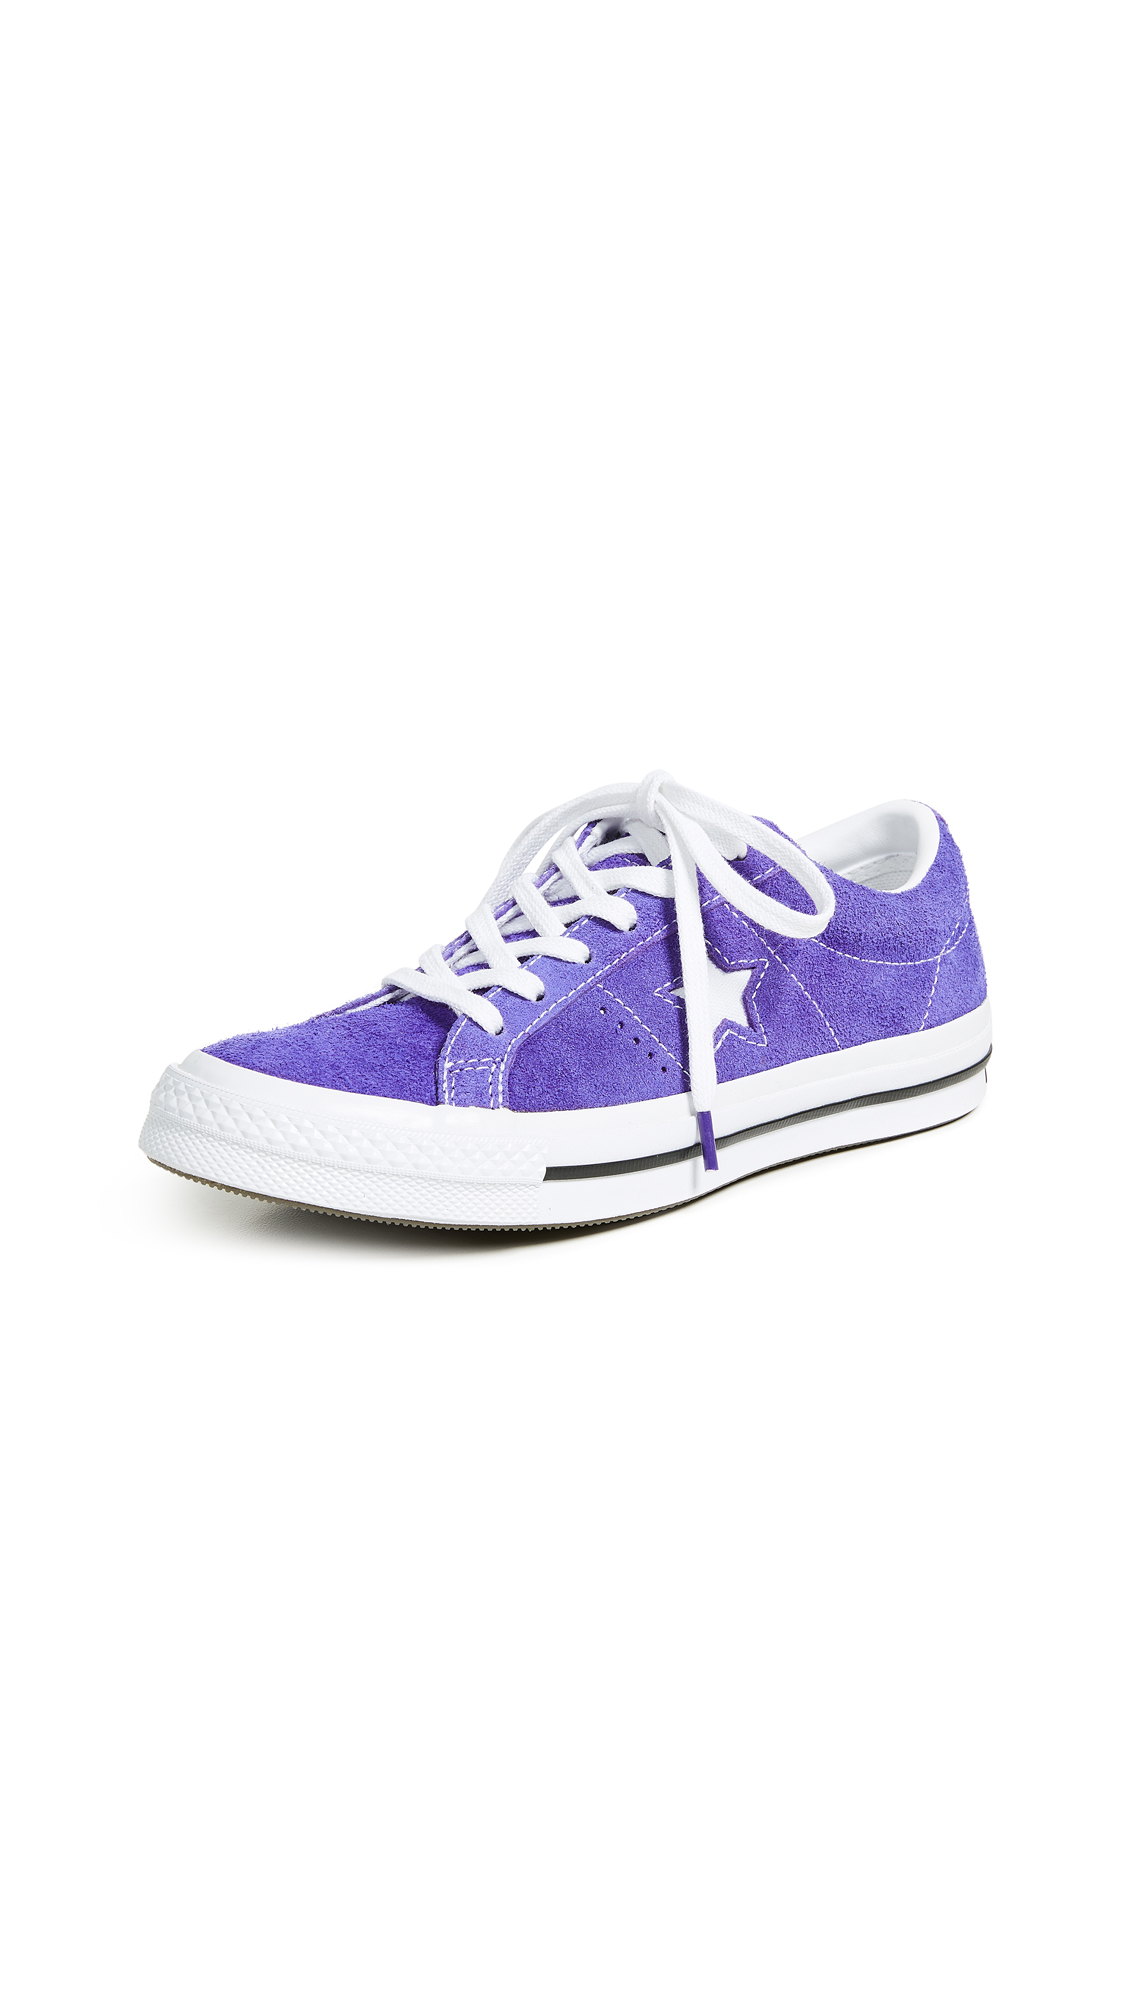 ONE STAR OX SNEAKERS